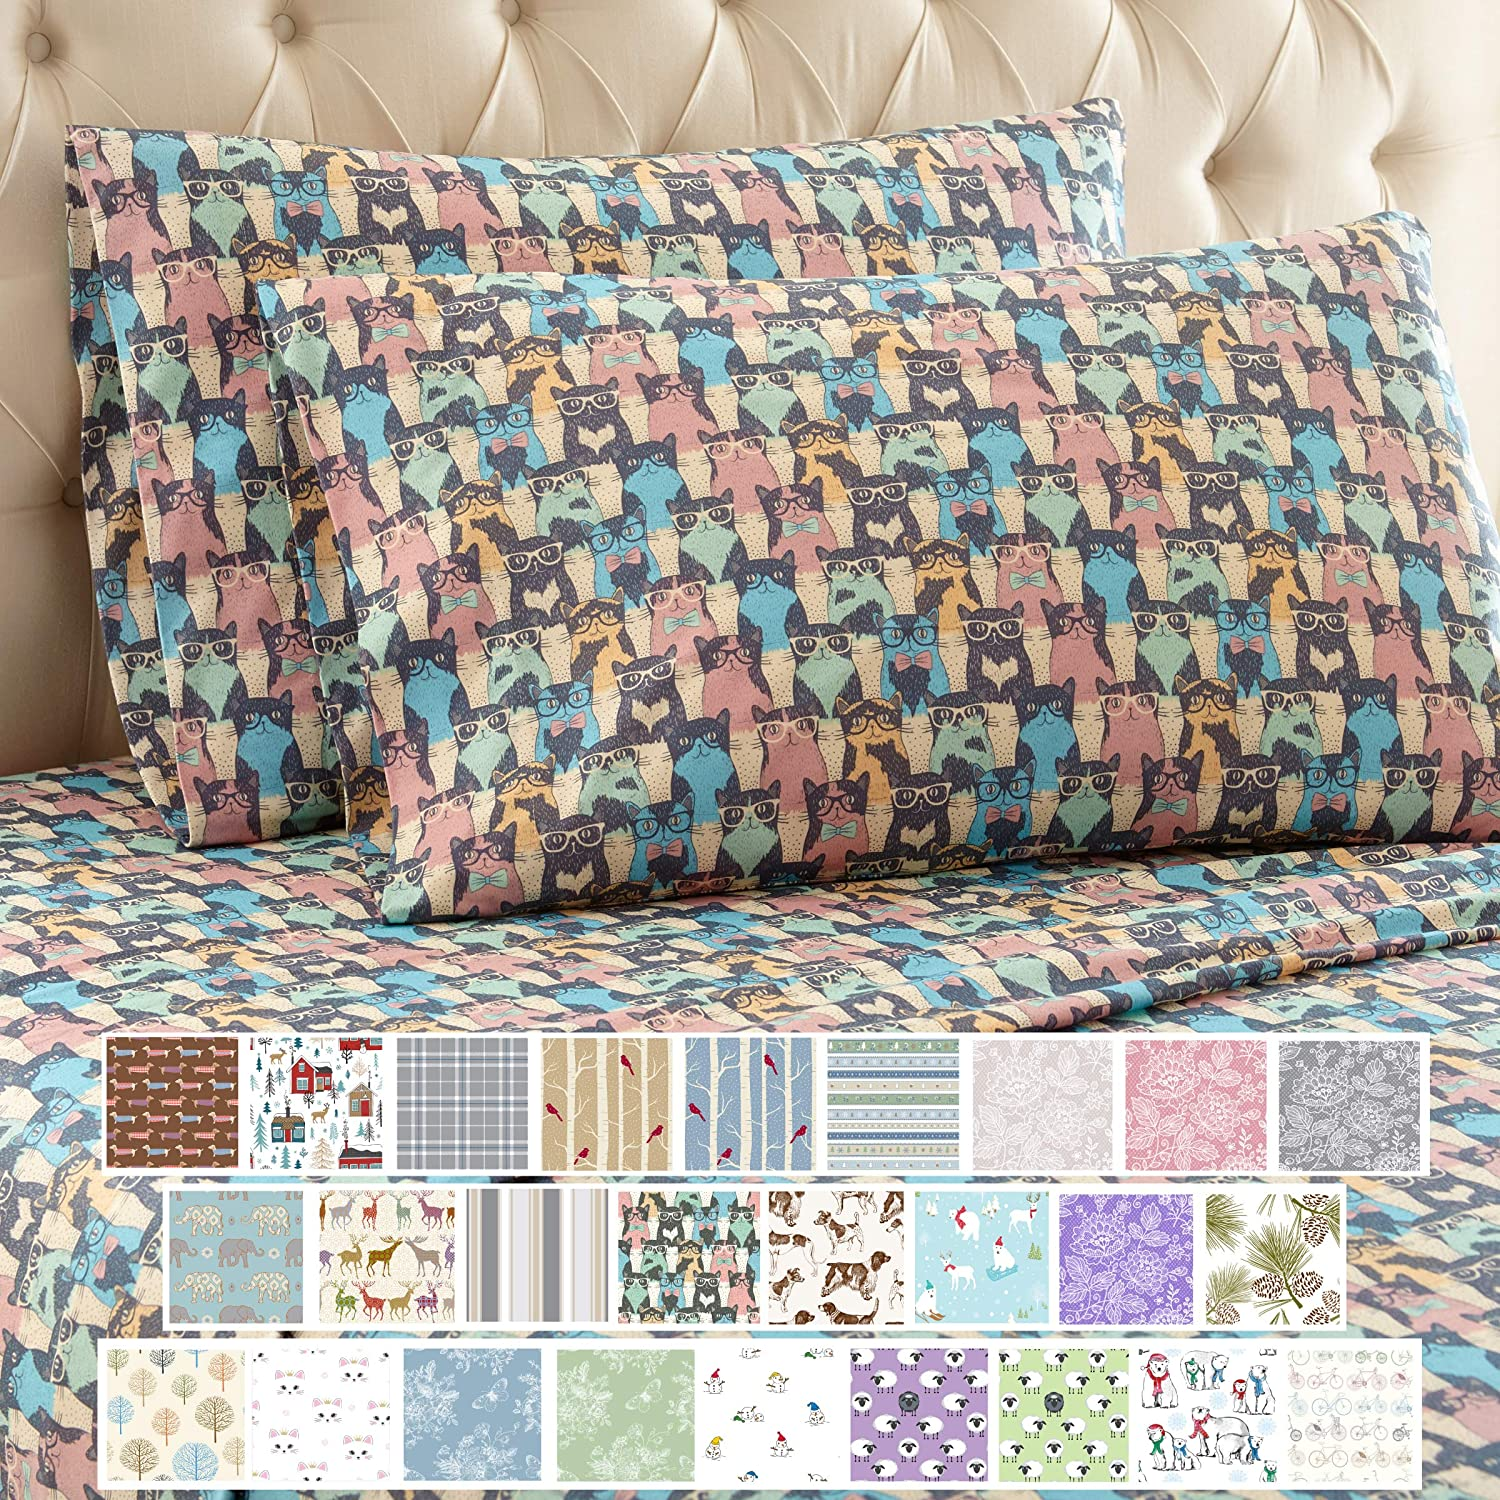 Thermee Micro Flannel Shavel Home Products Sheet Set, California Queen, Cat Party